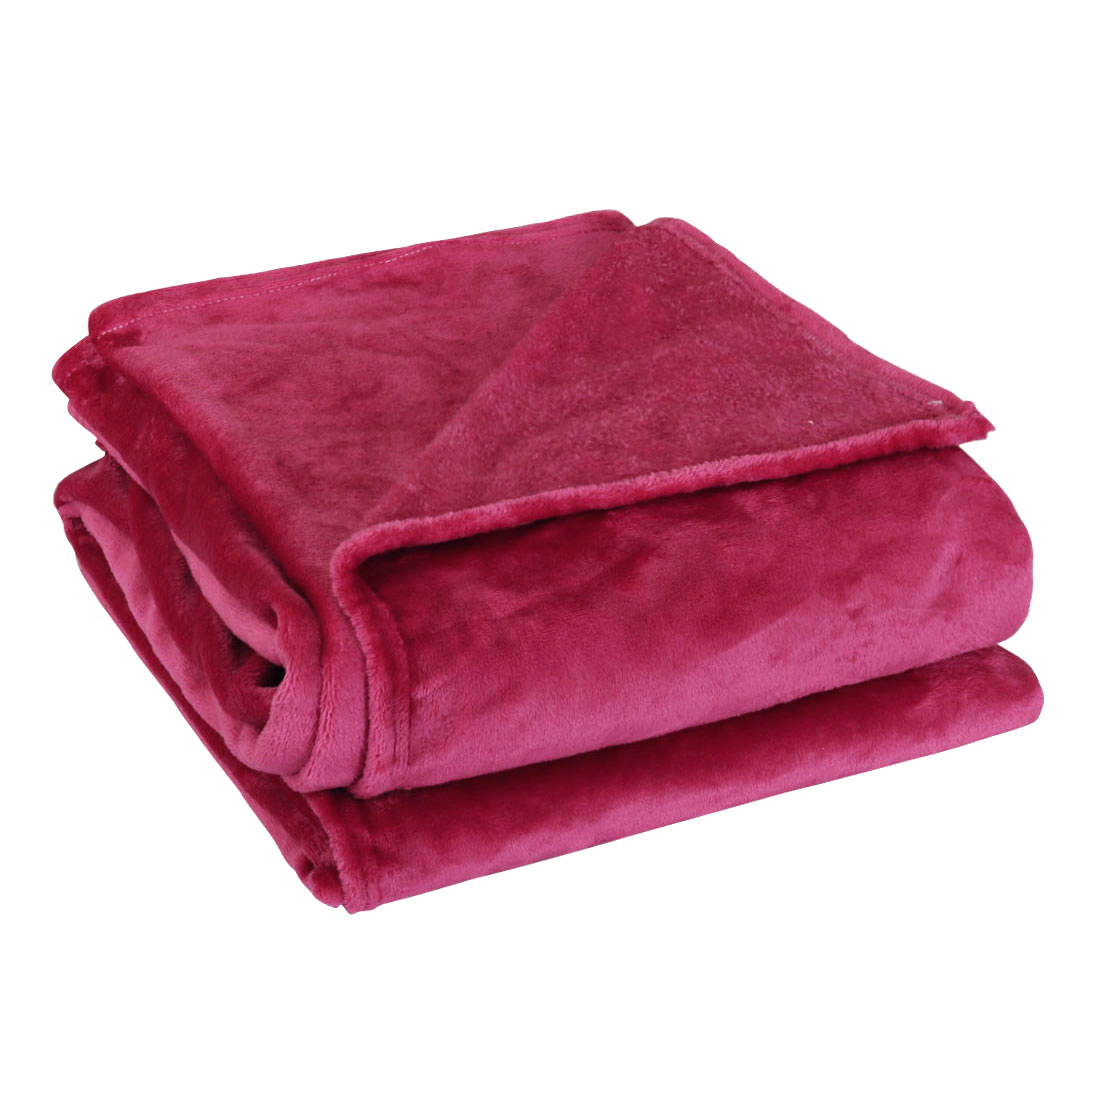 "Super Soft Warm Rug Luxury plush Fleece Throw Blanket, Suitable for Chair or Bed, Machine Washable,Burgundy, 150 x 200 cm (59"" x 78"")"